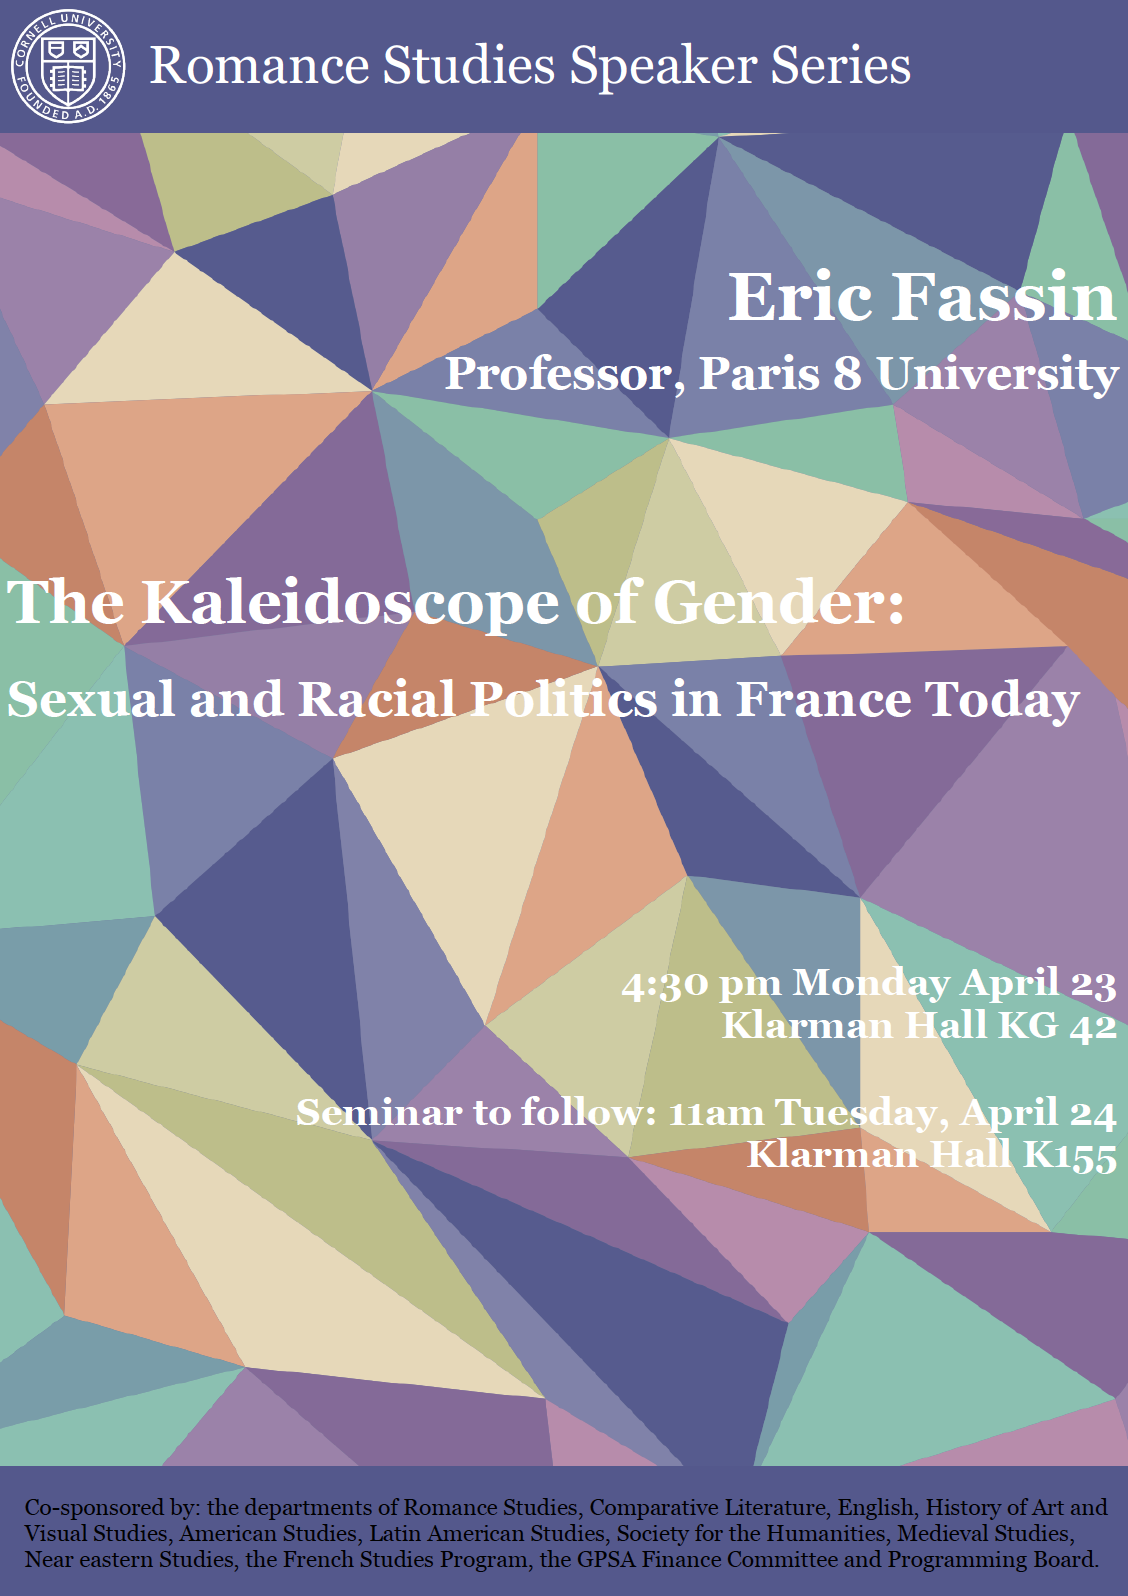 """Eric Fassin: """"The Kaleidoscope of Gender: Sexual and Racial Politics in France Today"""""""